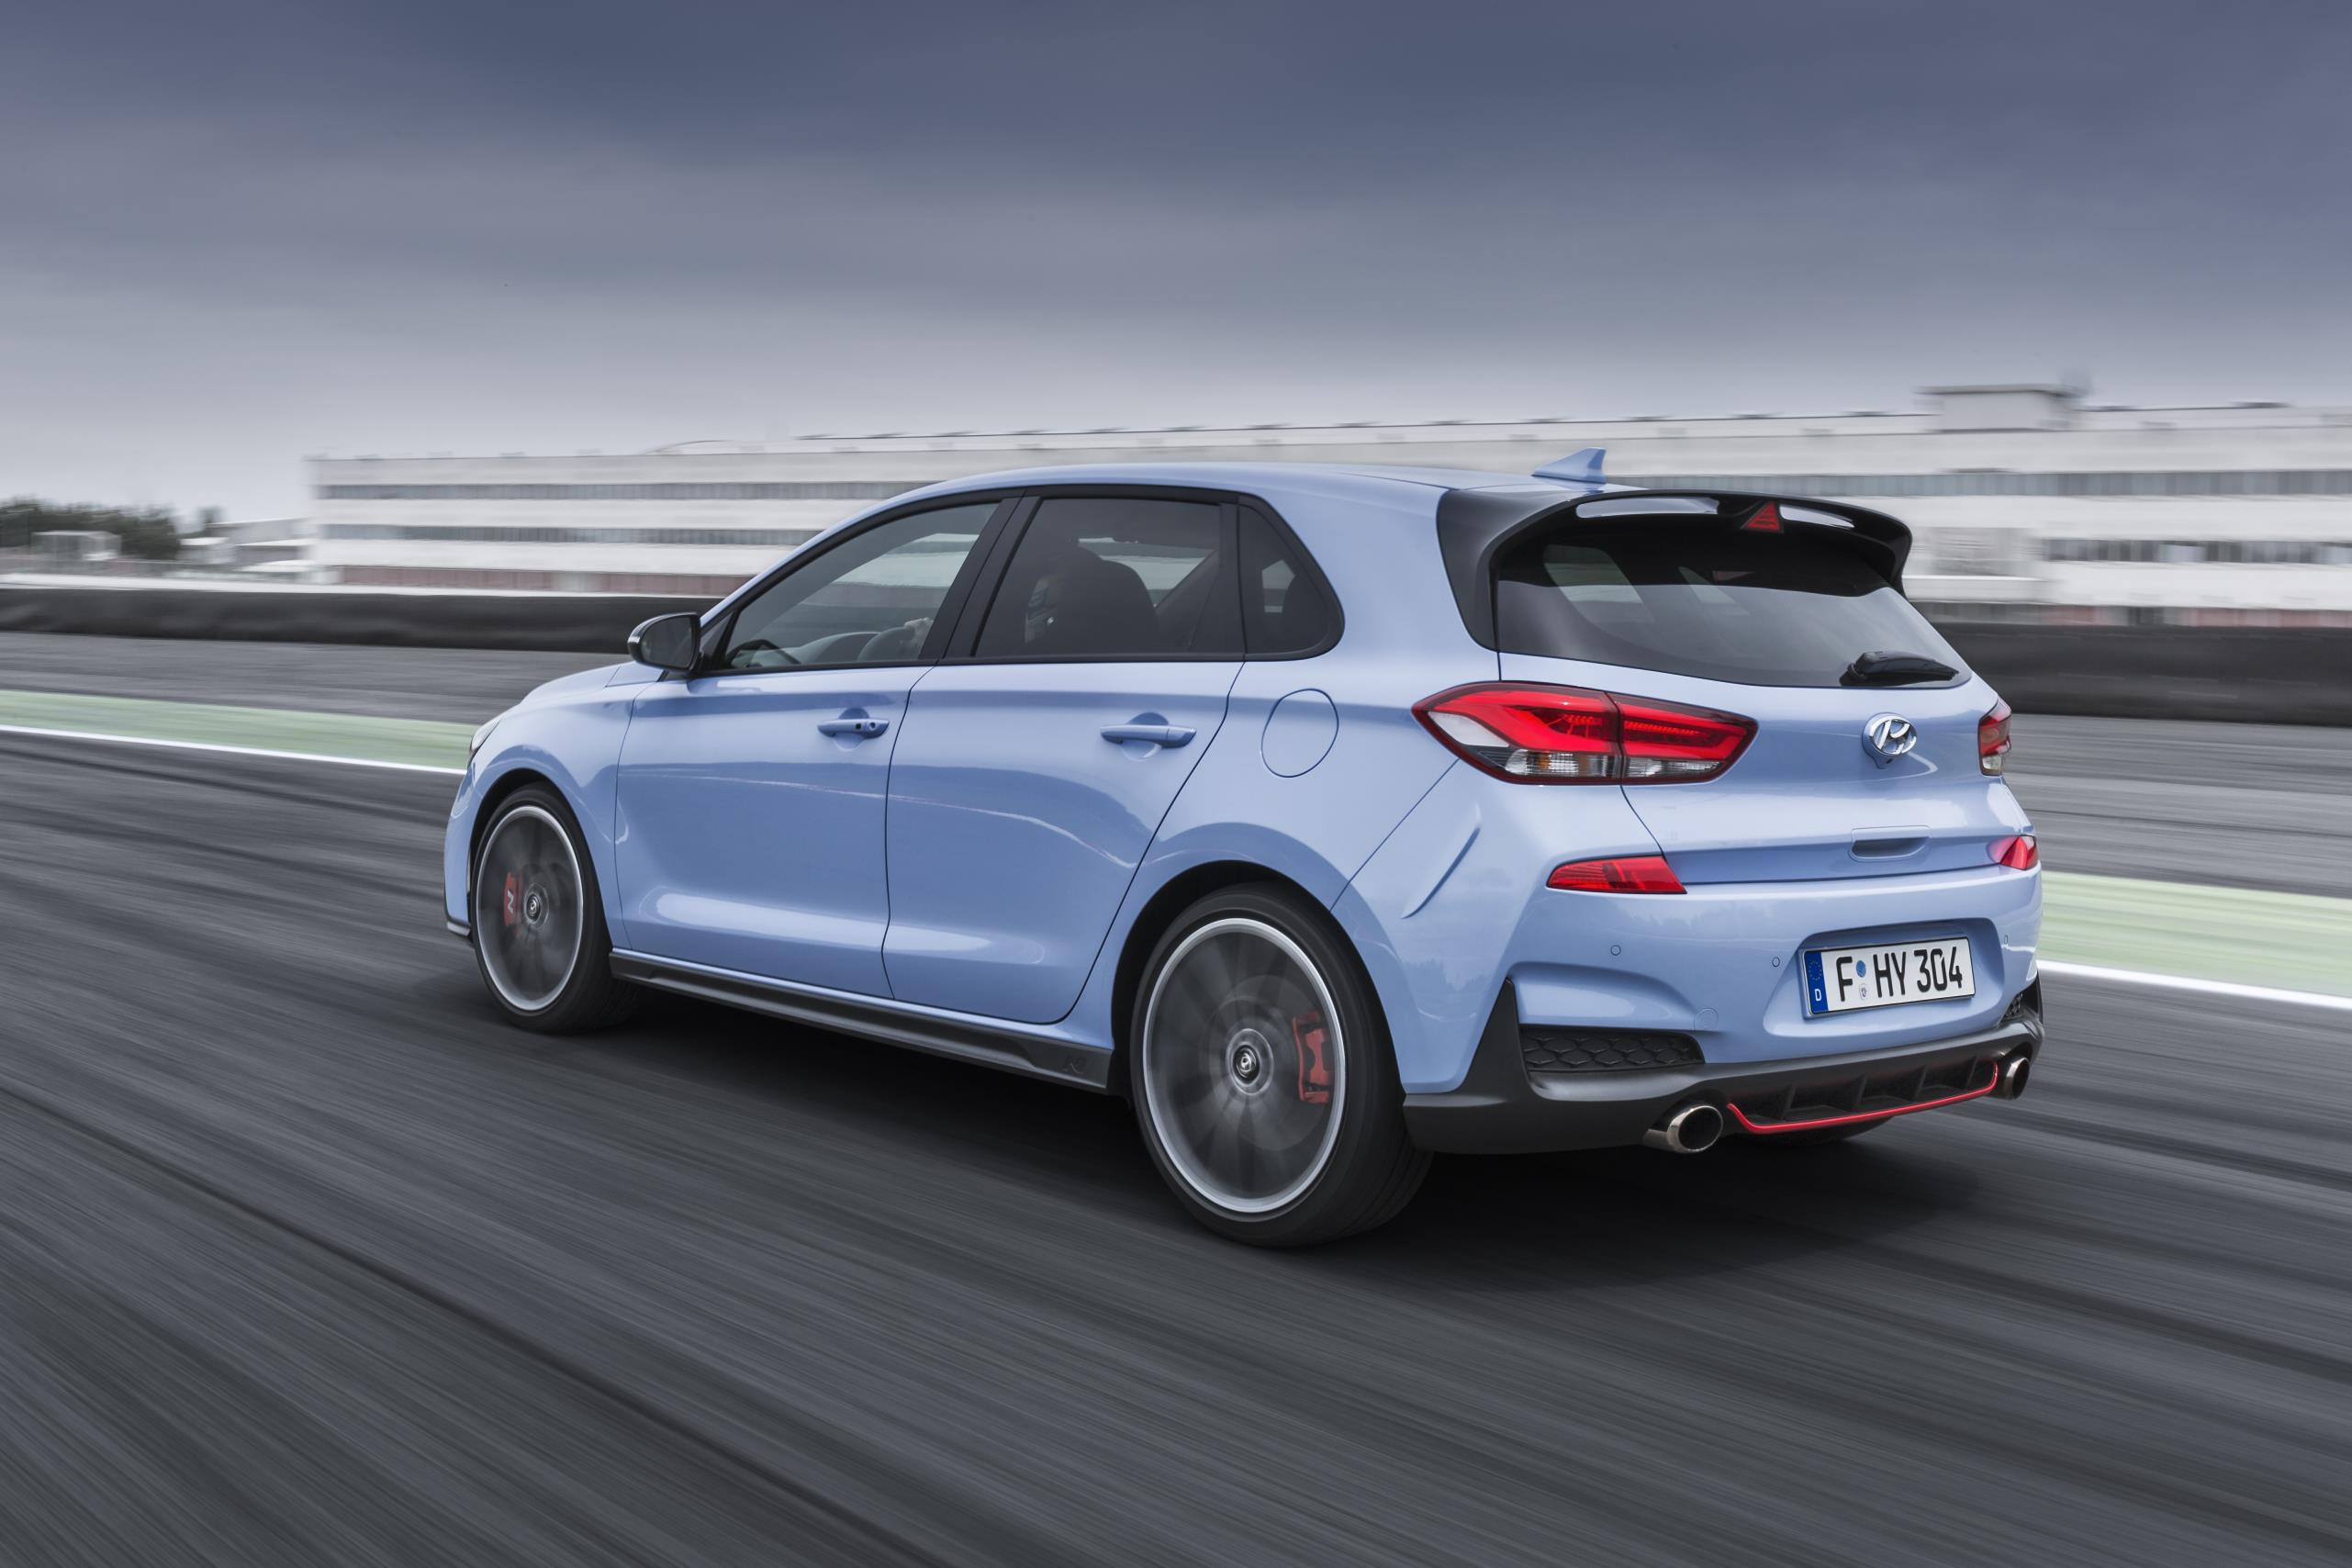 The new Hyundai i30 N is a spicy hatchback pickled in vigour, with a generous dash of German engineering and a sprinkle of WRC glitter.